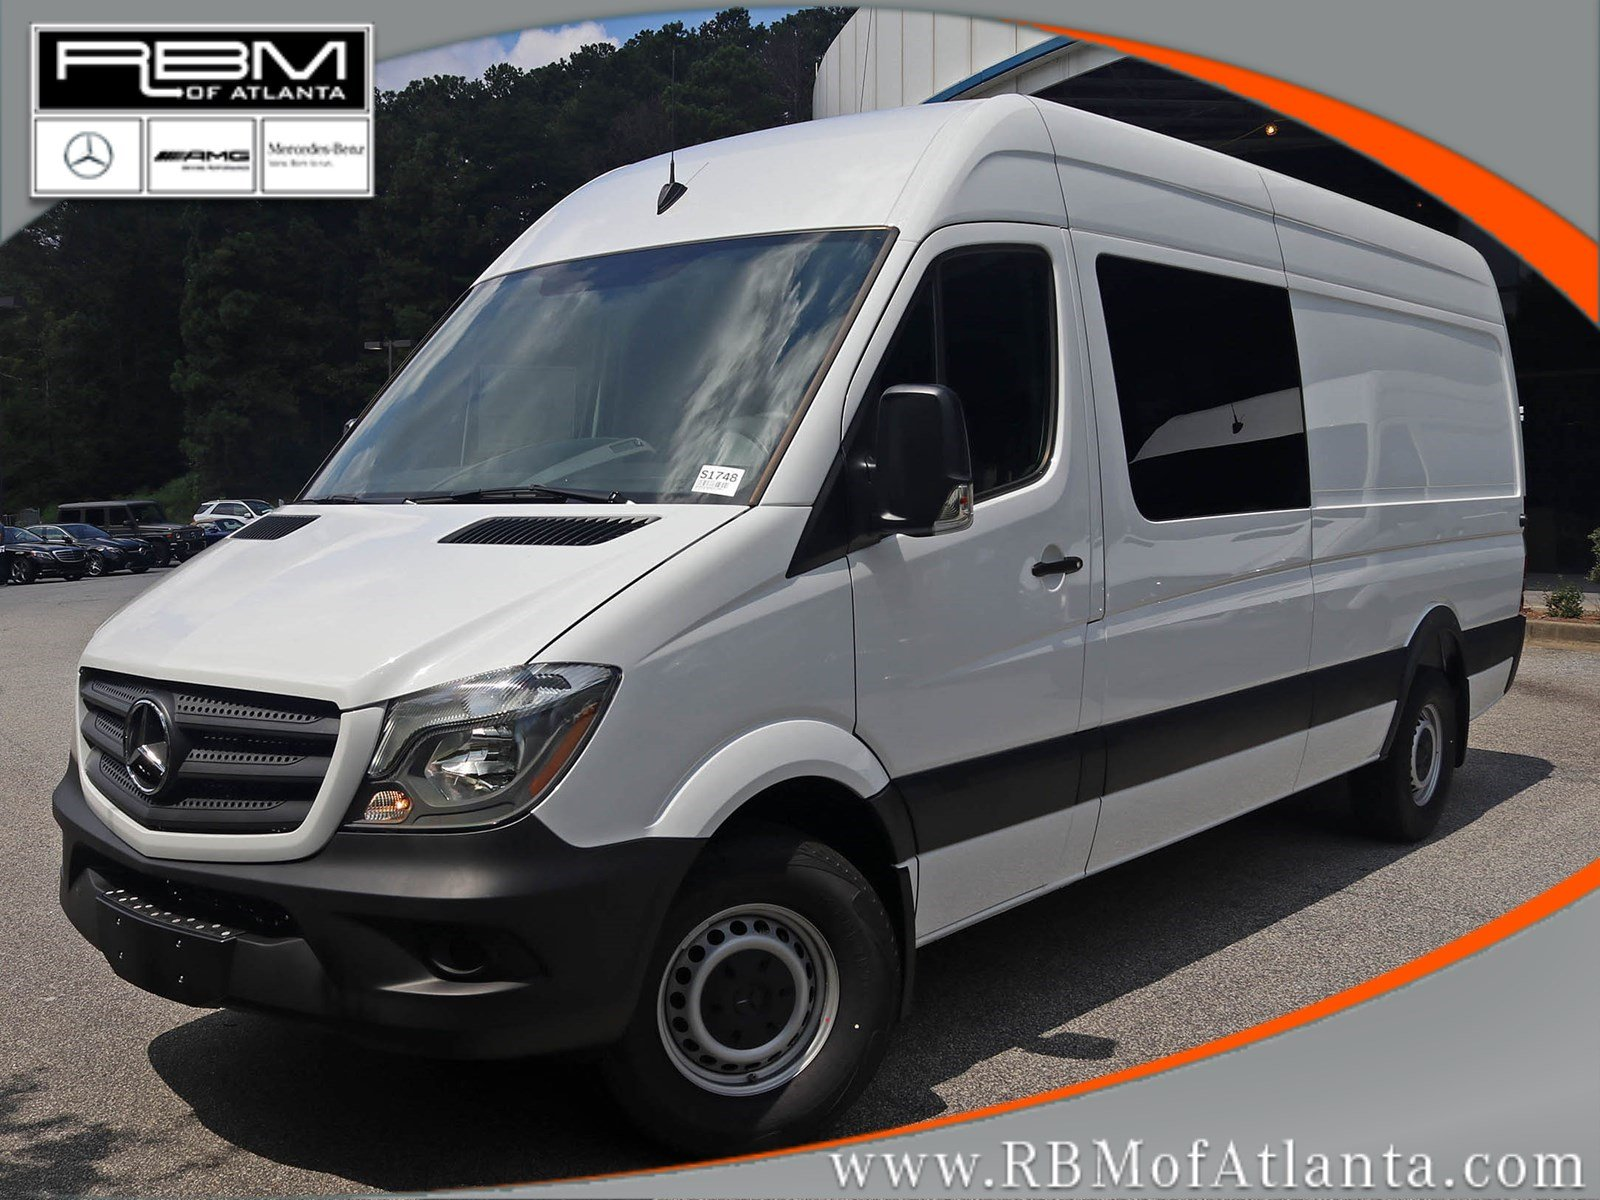 New 2017 mercedes benz sprinter crew van in atlanta s1748 for Mercedes benz mechanic jobs